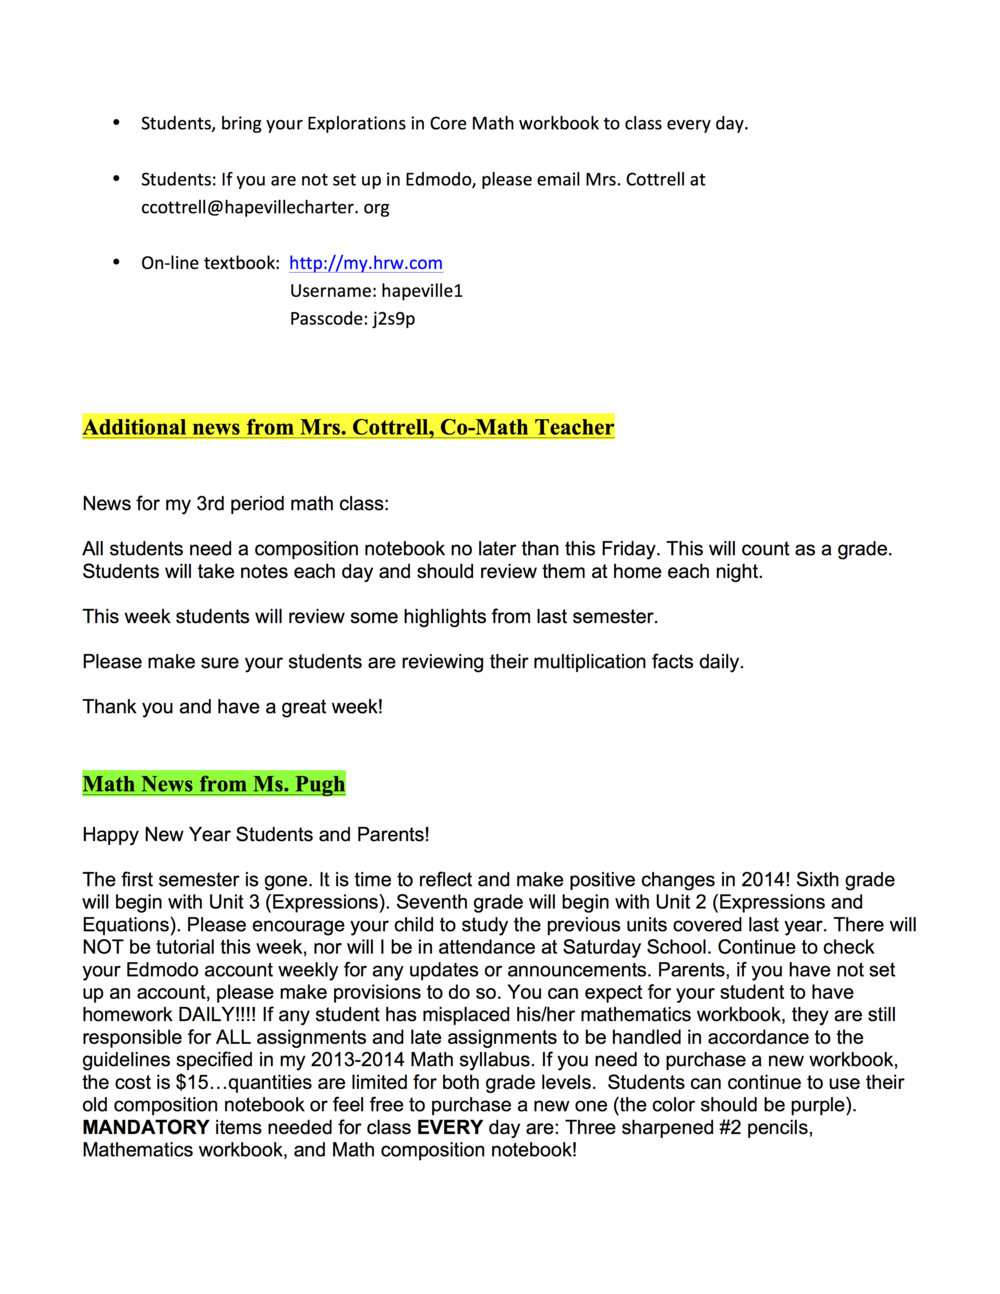 7th grade newsletter 1-9B.png